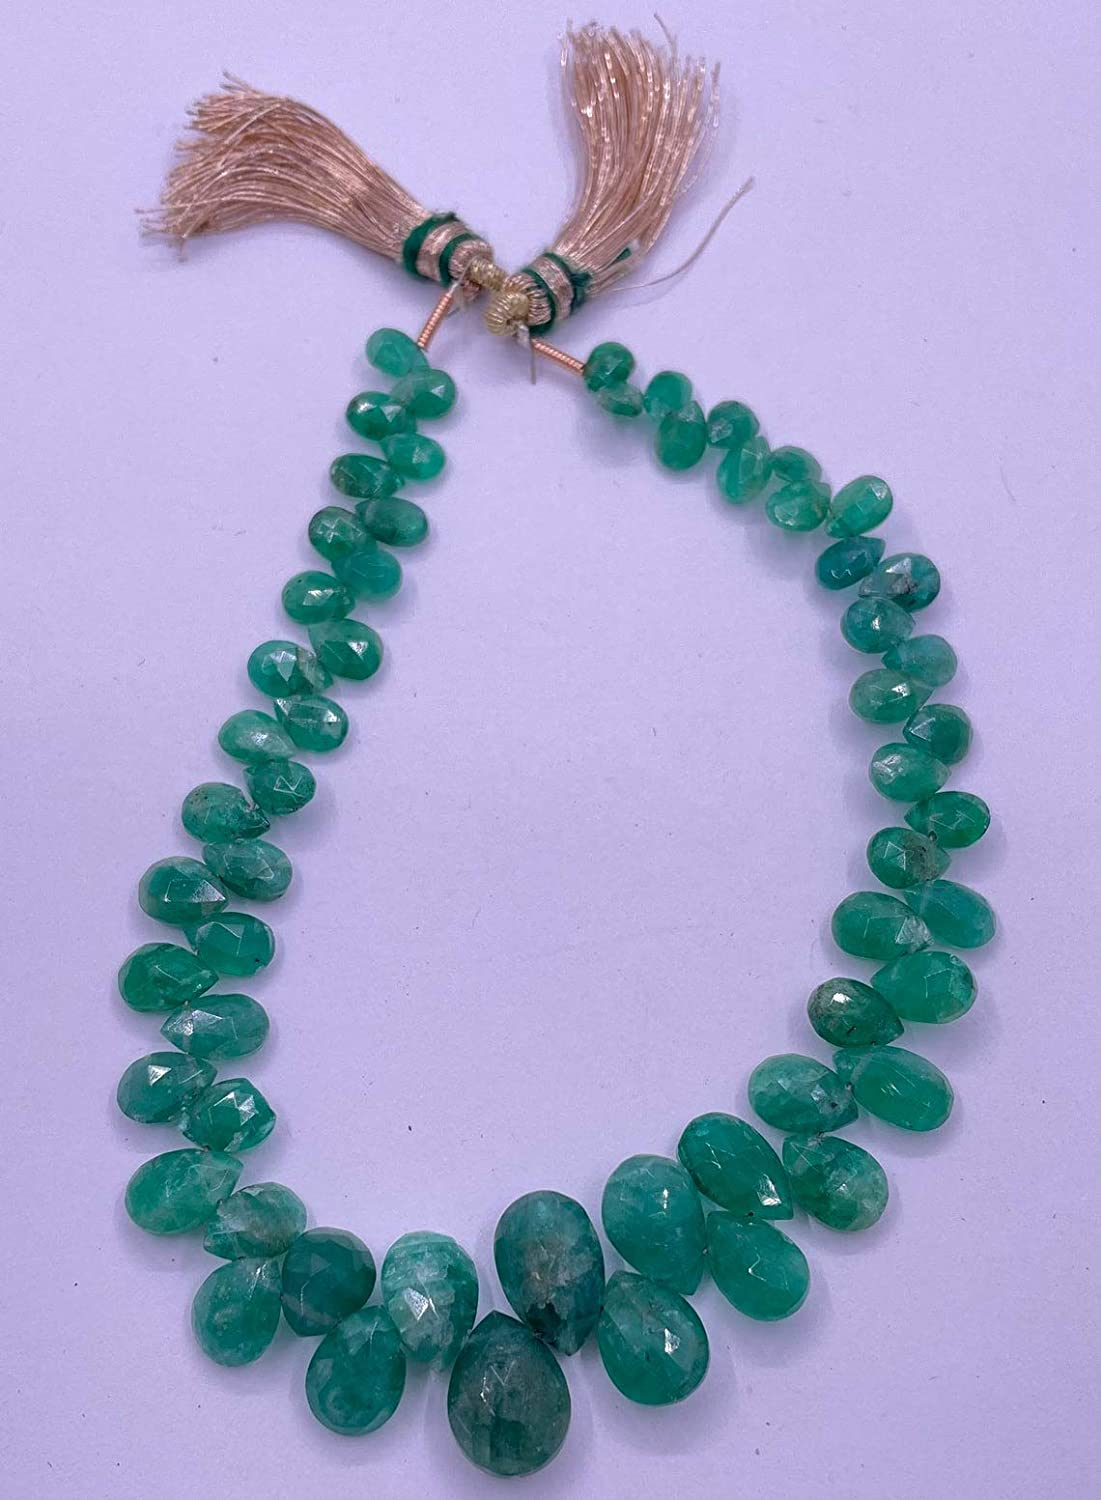 Shree Narayani AAA Cheap super special price Quality emerald Long-awaited 5x8-8x12mm Strand Loose Beads